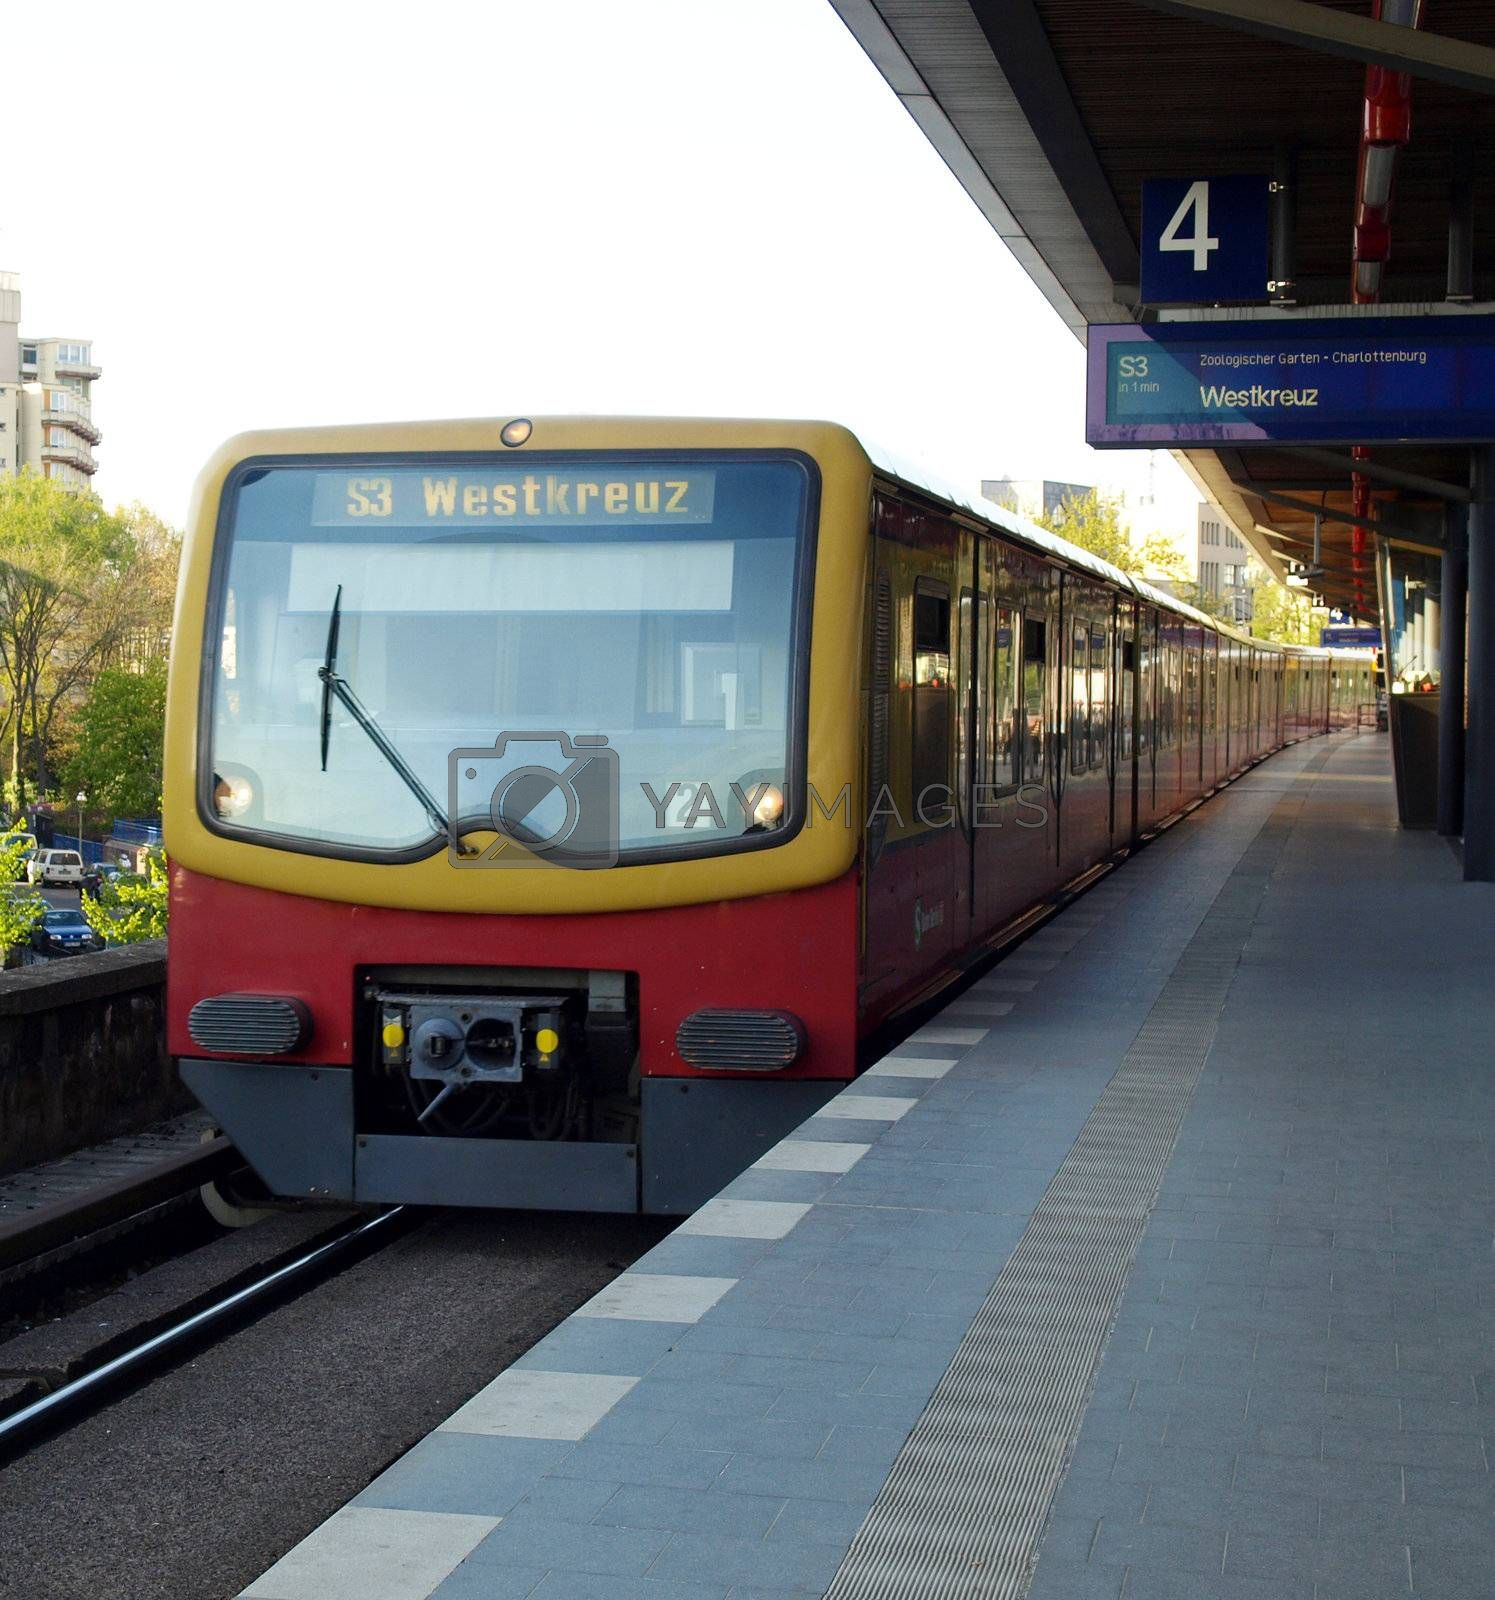 An underground subway metro tube train for public transport